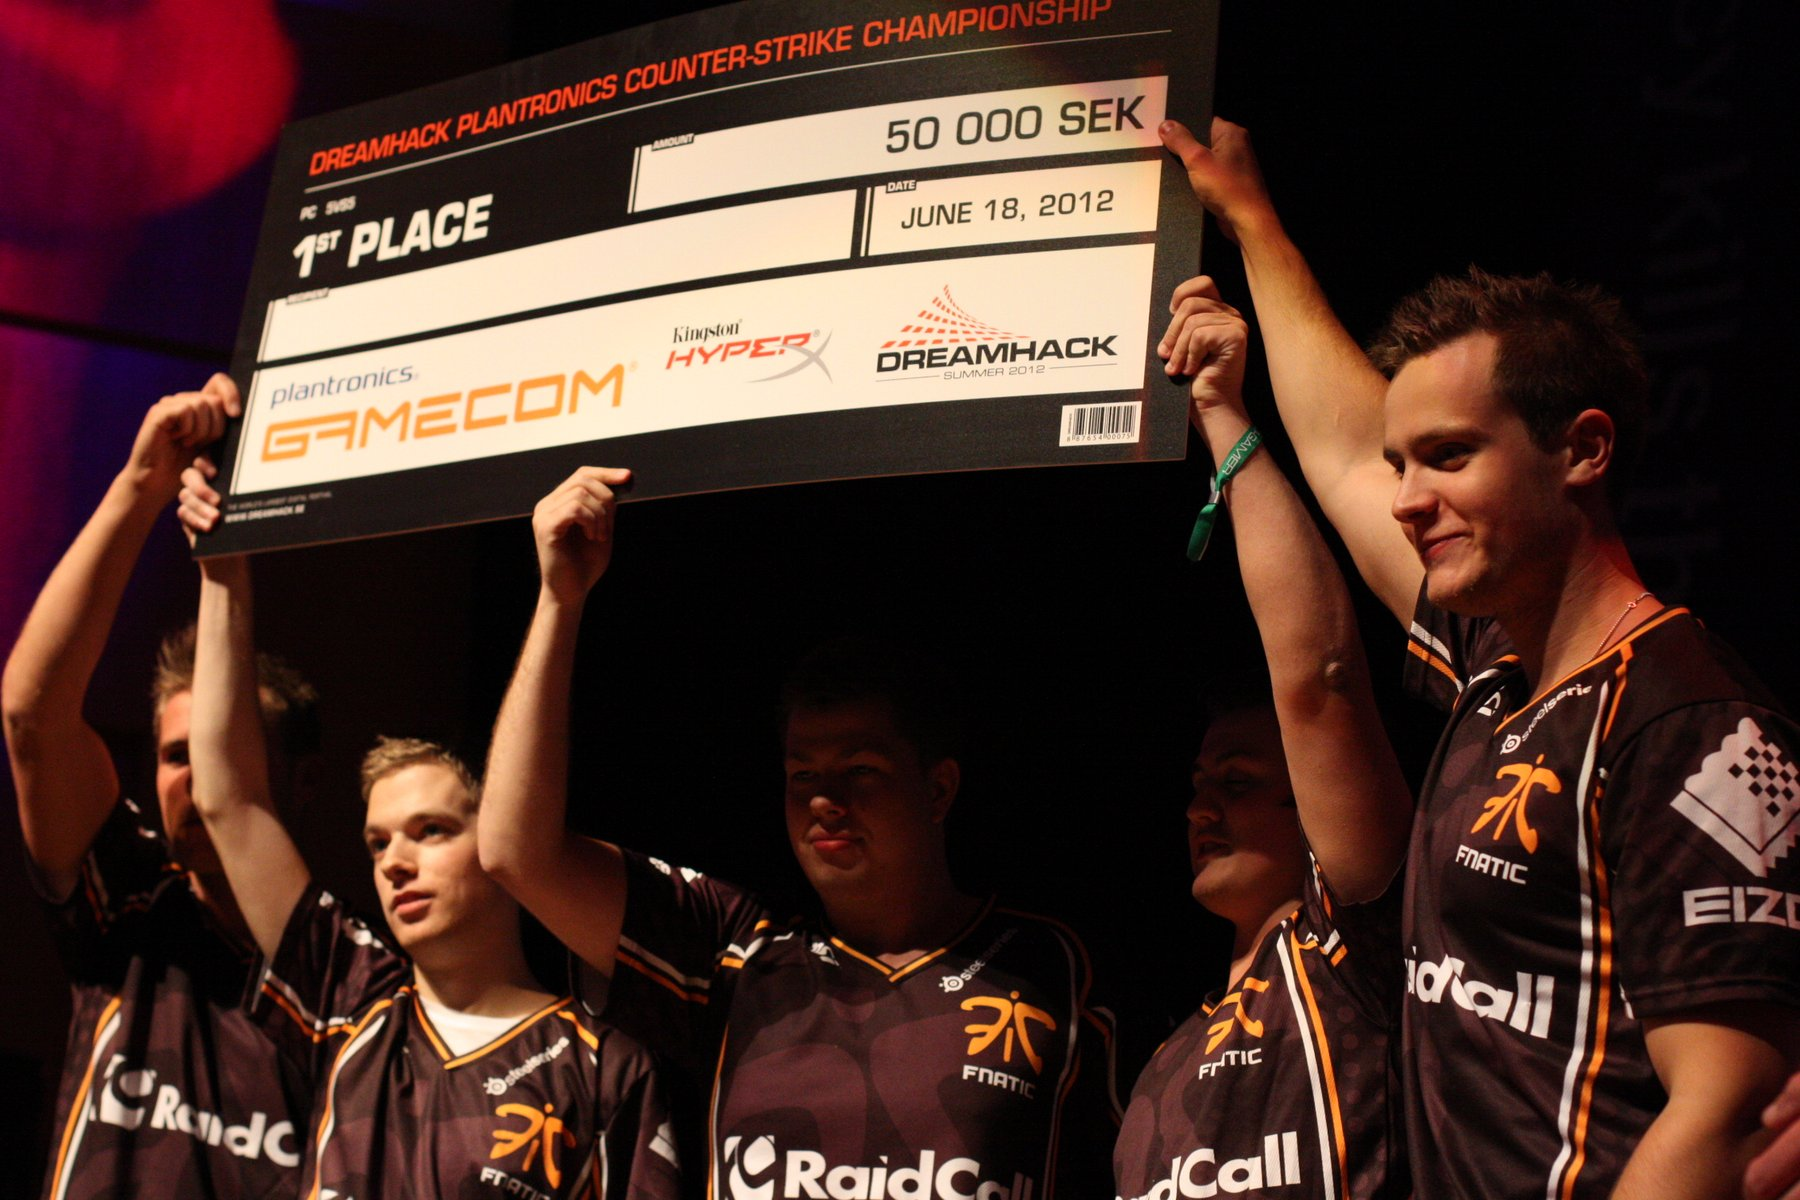 Fnatic winning DreamHack Summer 2012.